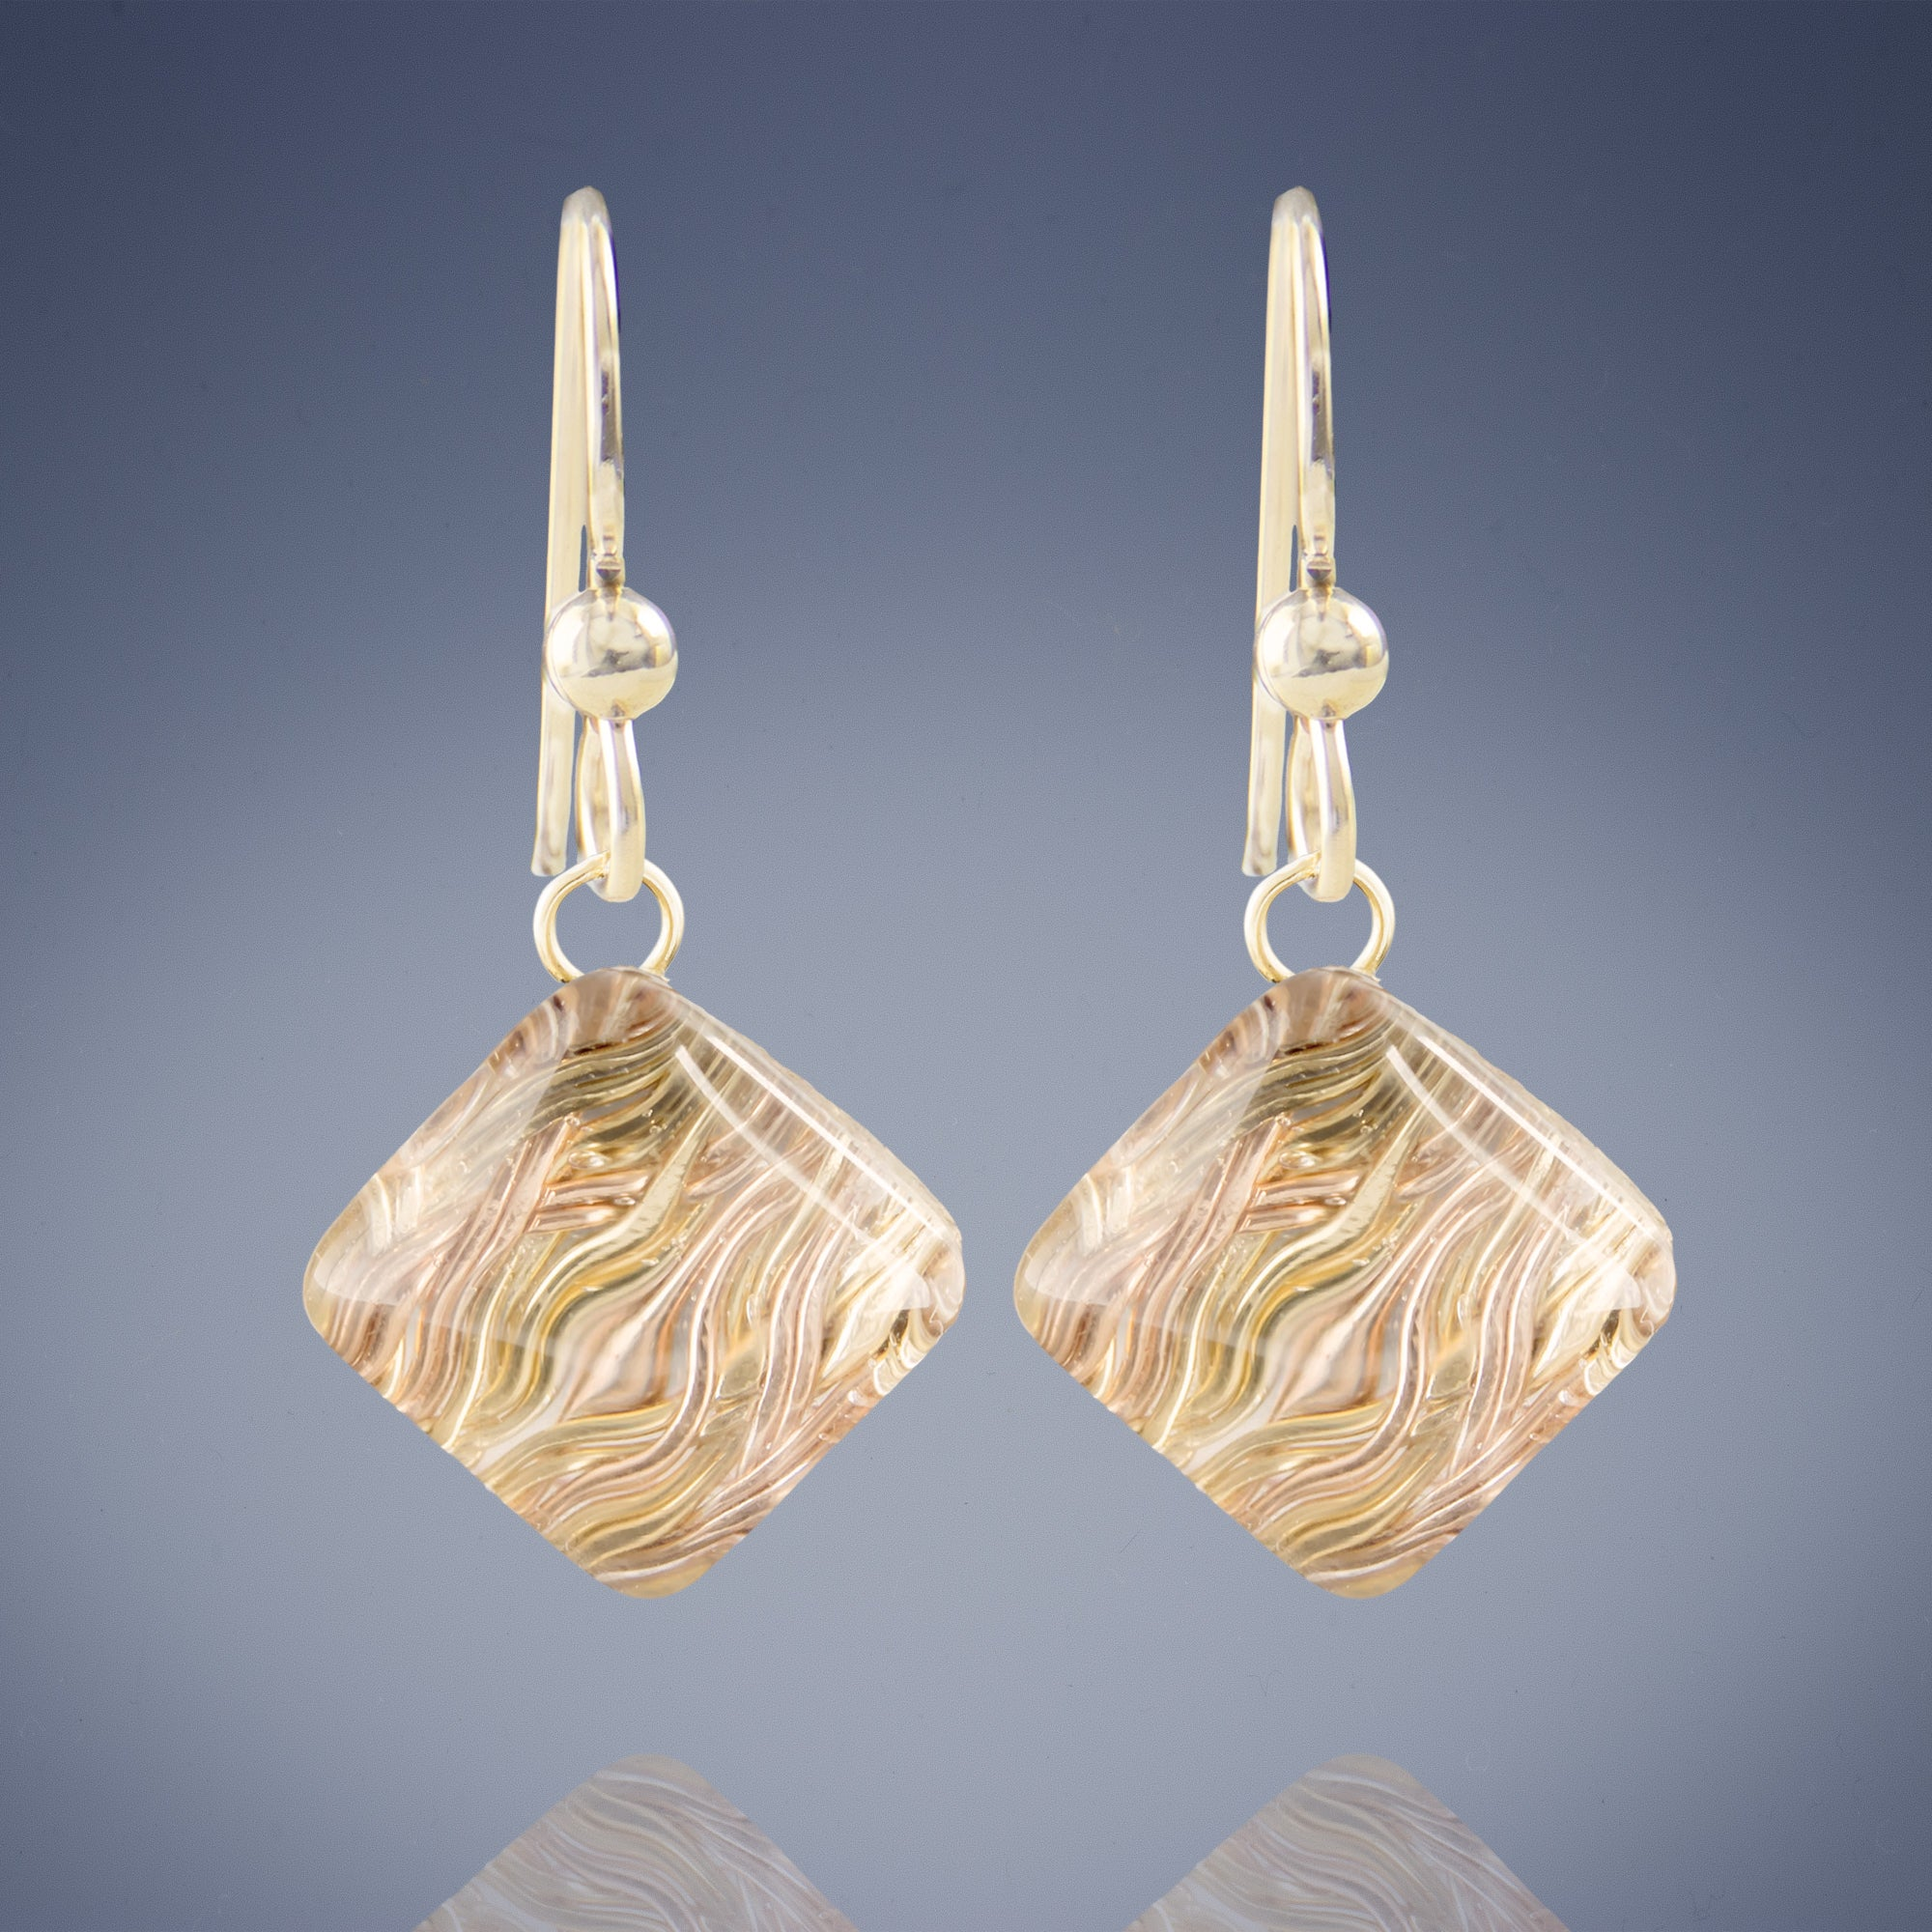 Geometric Pyramid Shaped Earrings Featuring Handwoven Wire and Glass in Silver or Gold Mix